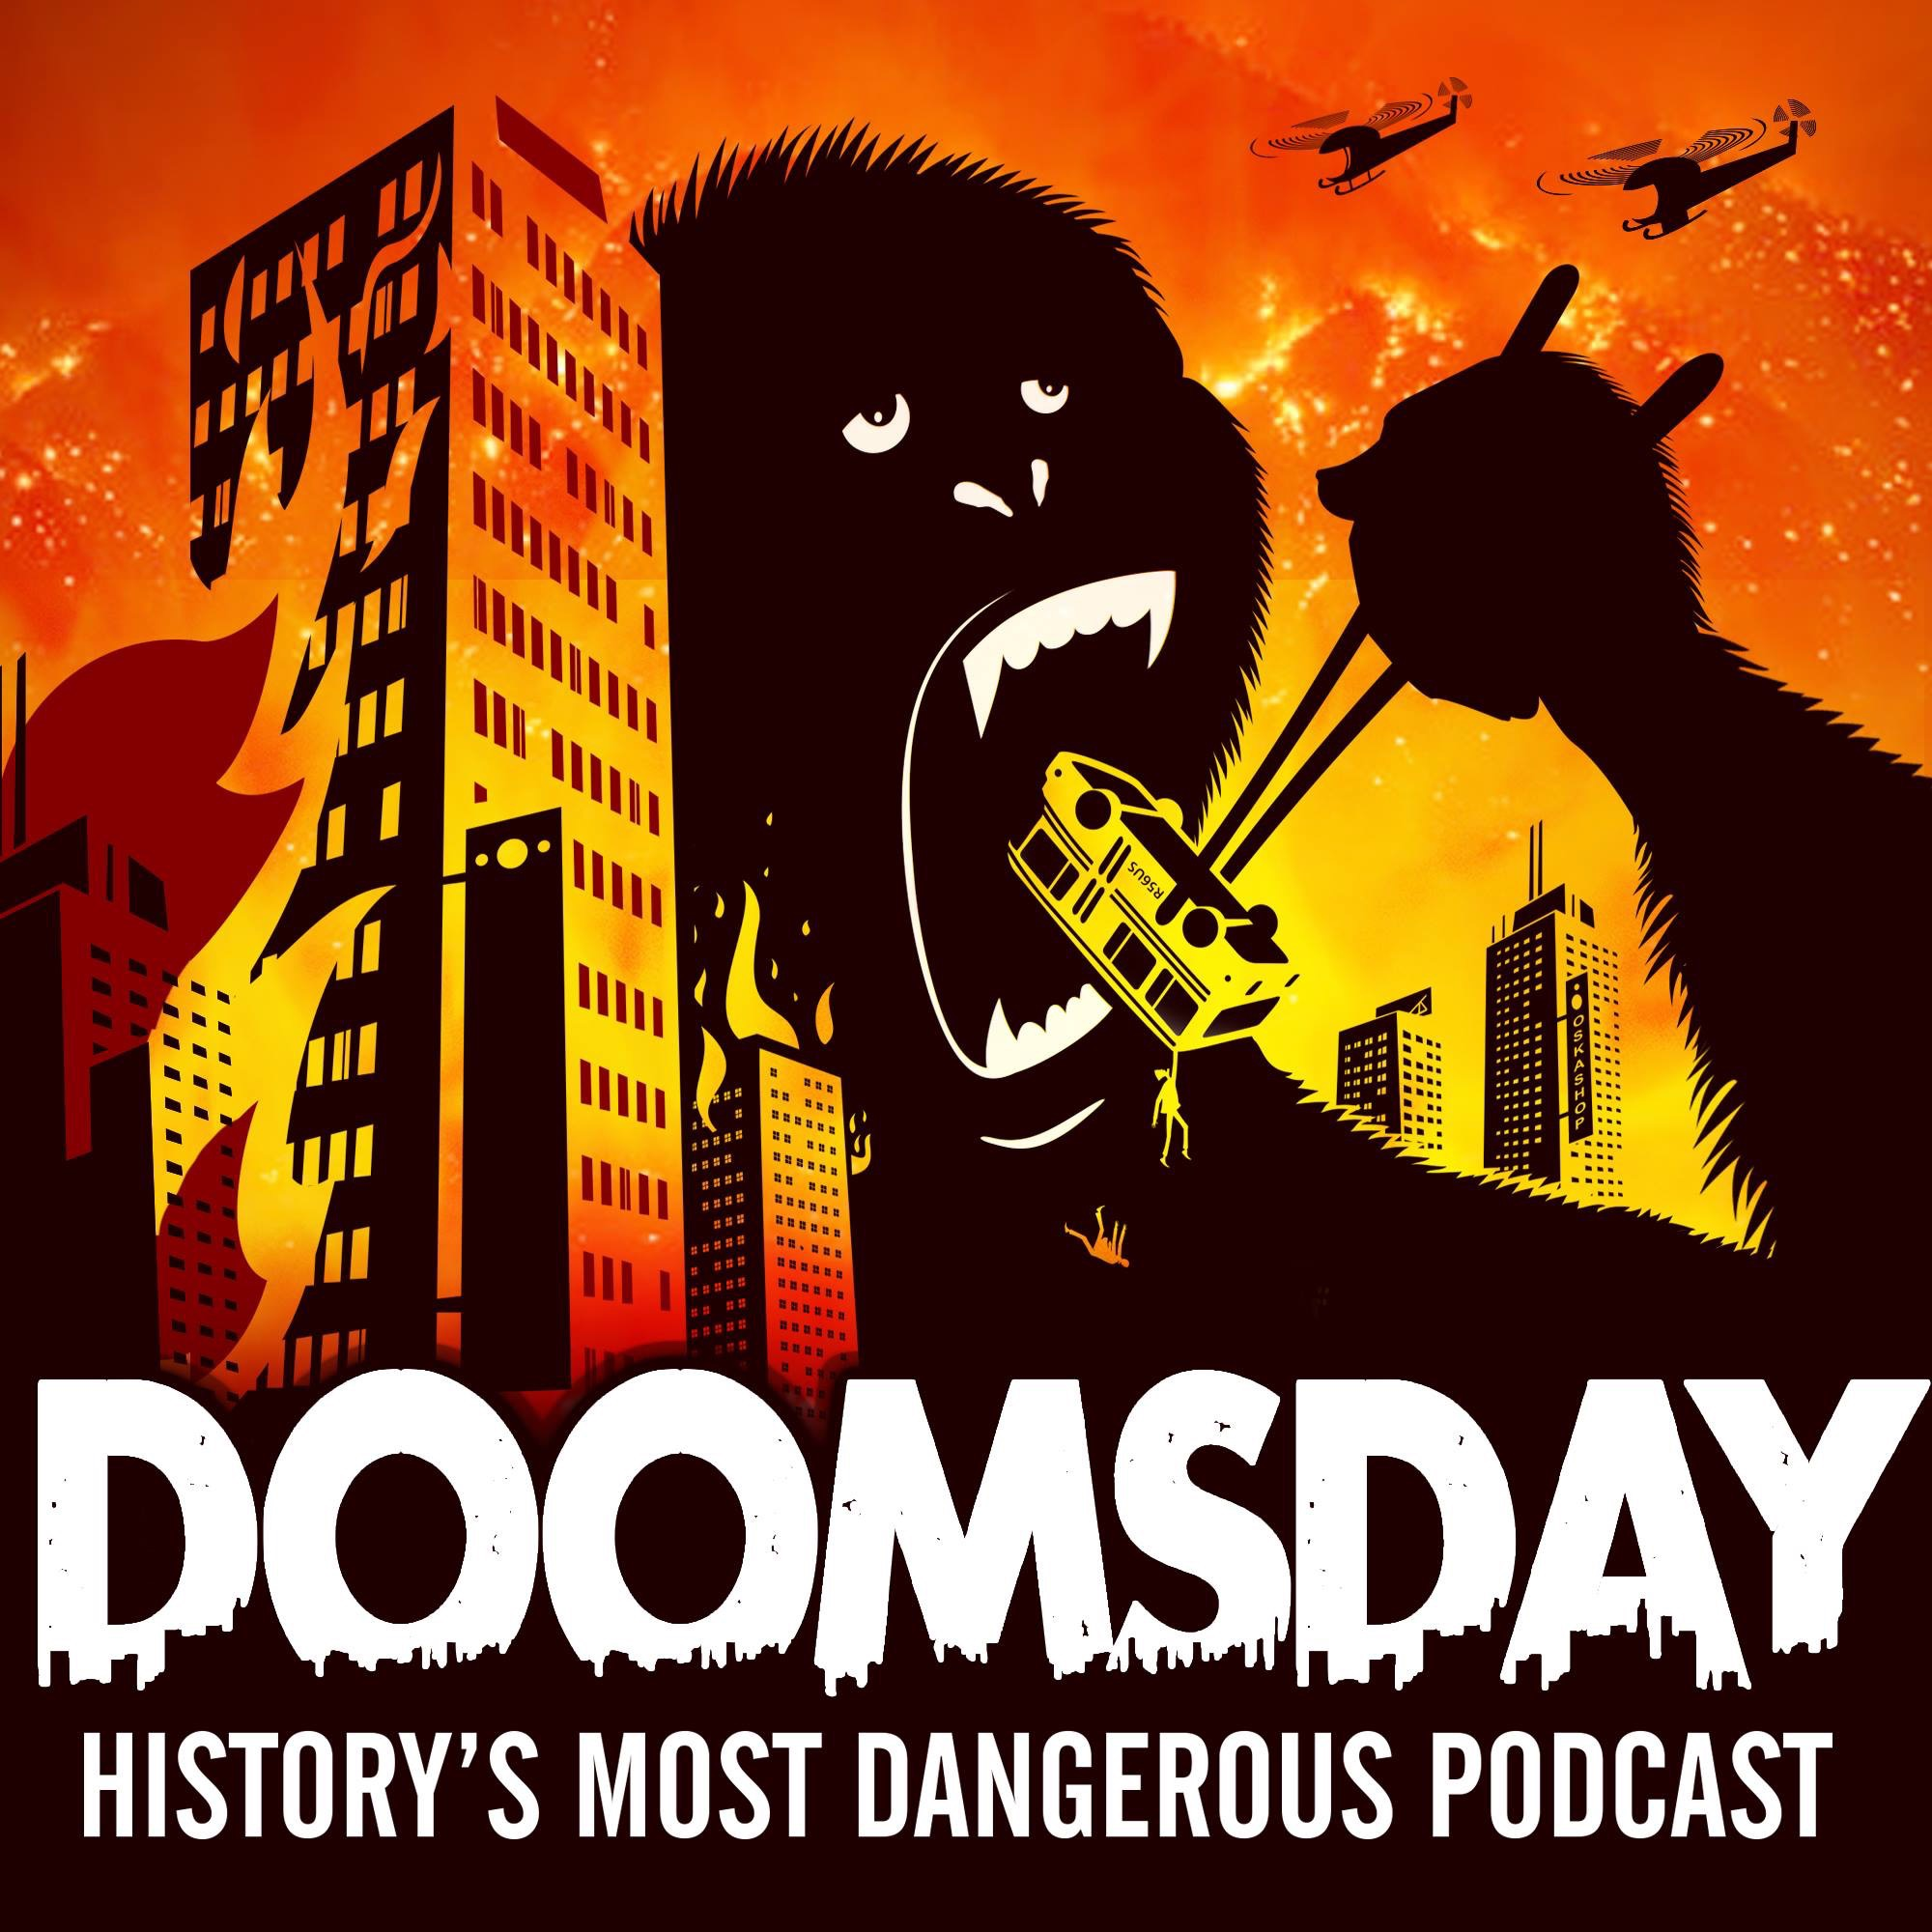 Doomsday: History's Most Dangerous Podcast